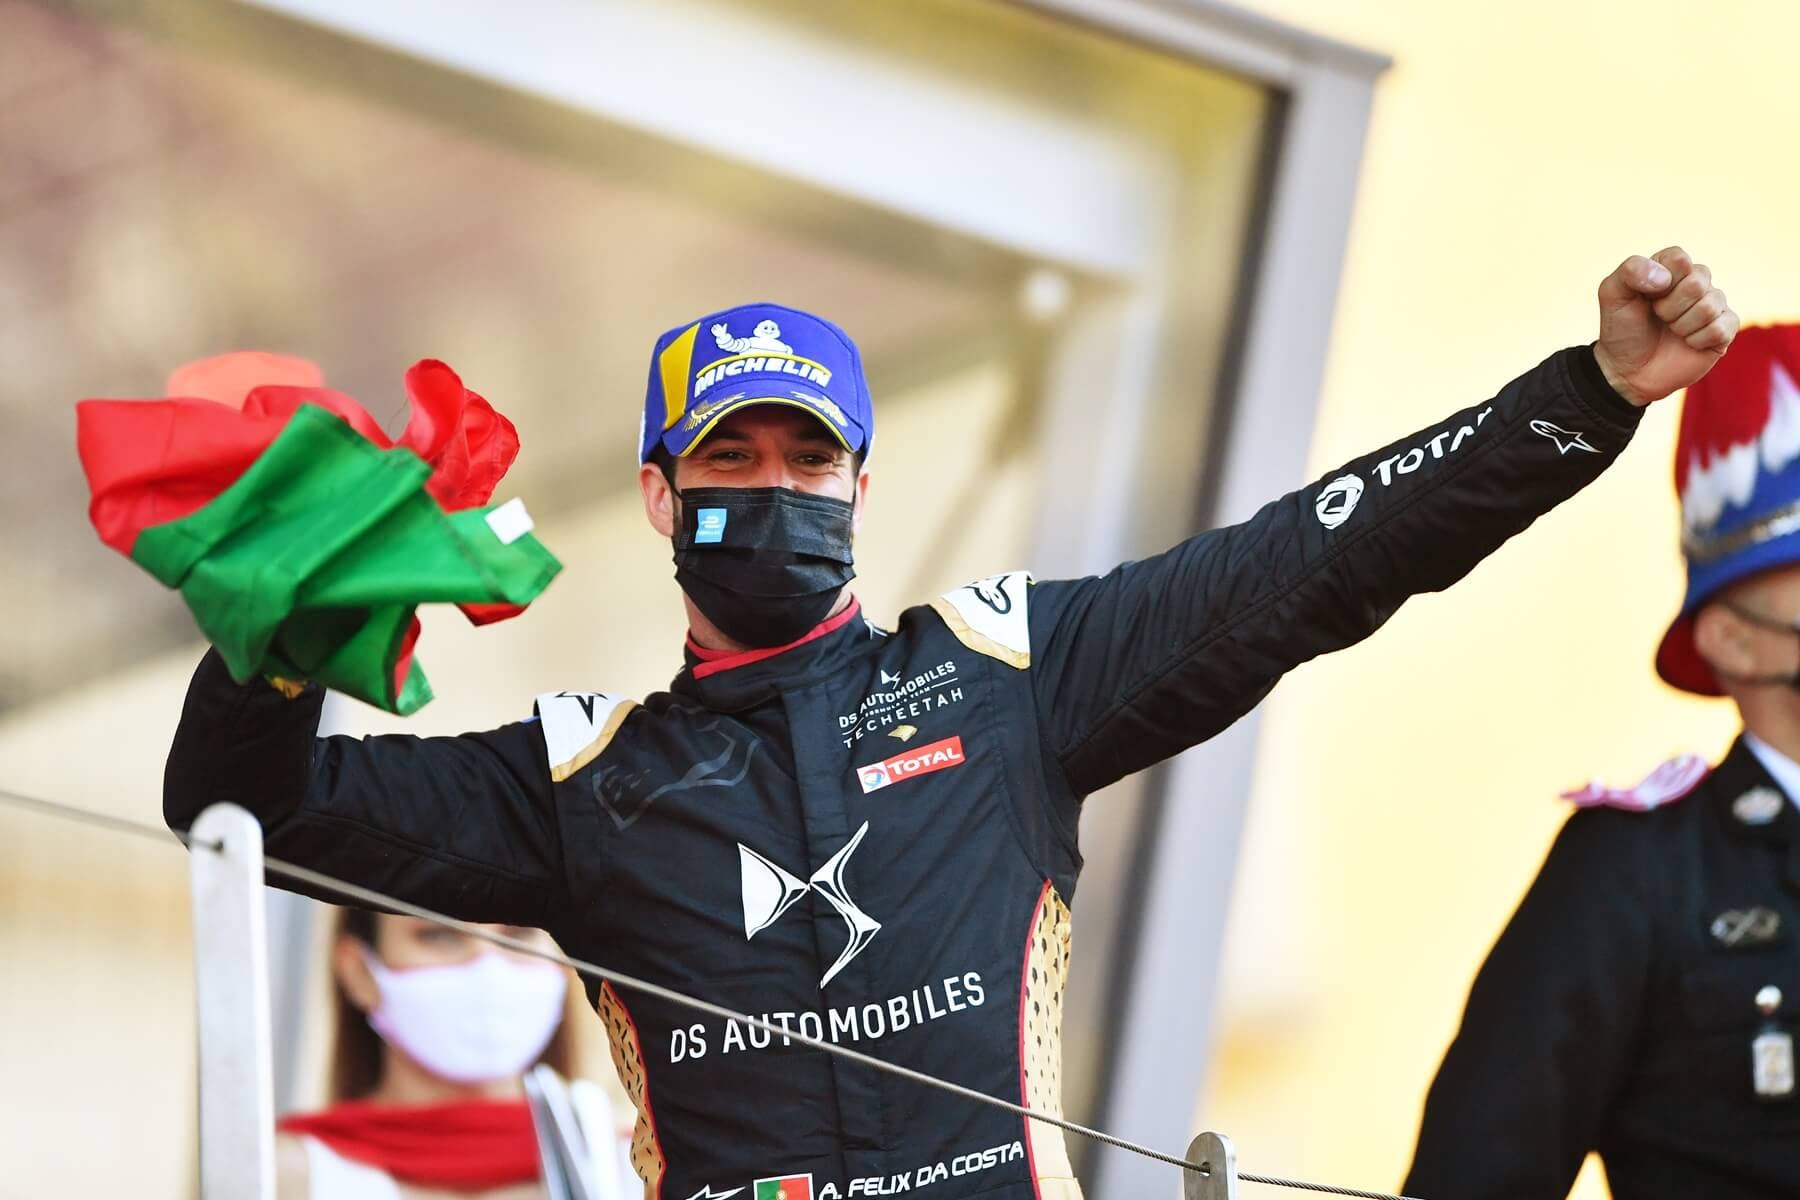 Felix-da-Costa-Mask-Monaco-Celebration